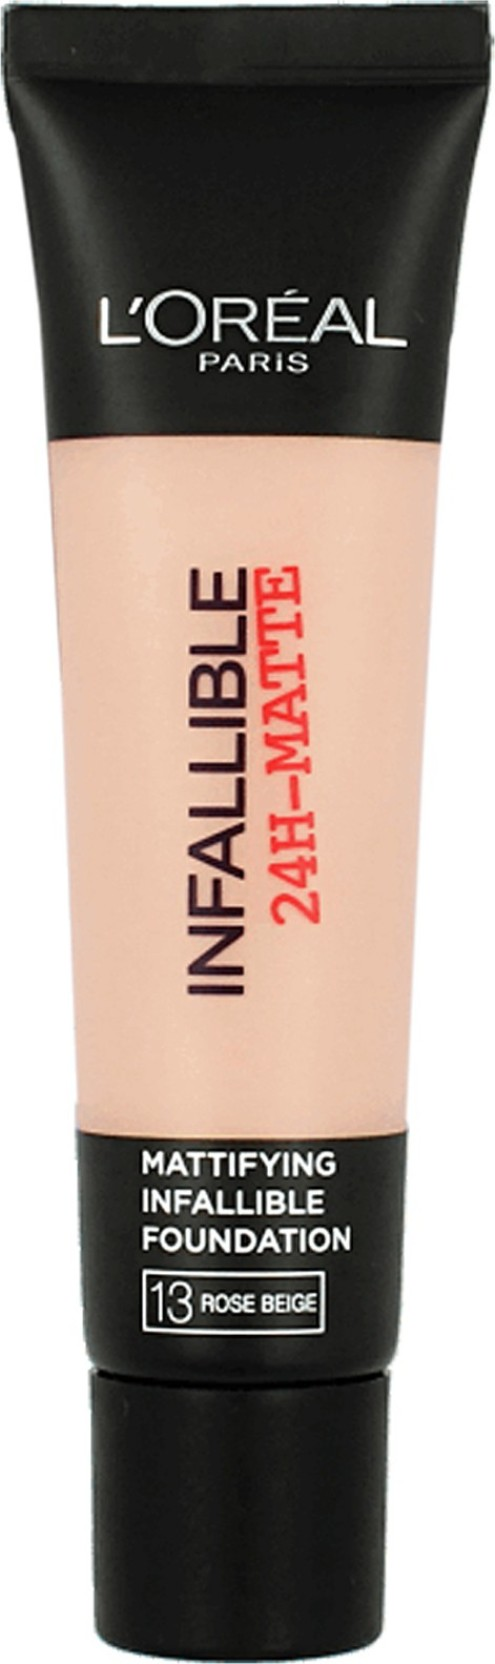 Loreal Paris Infallible 24hr Matte Foundation Price In India Buy Pro Share